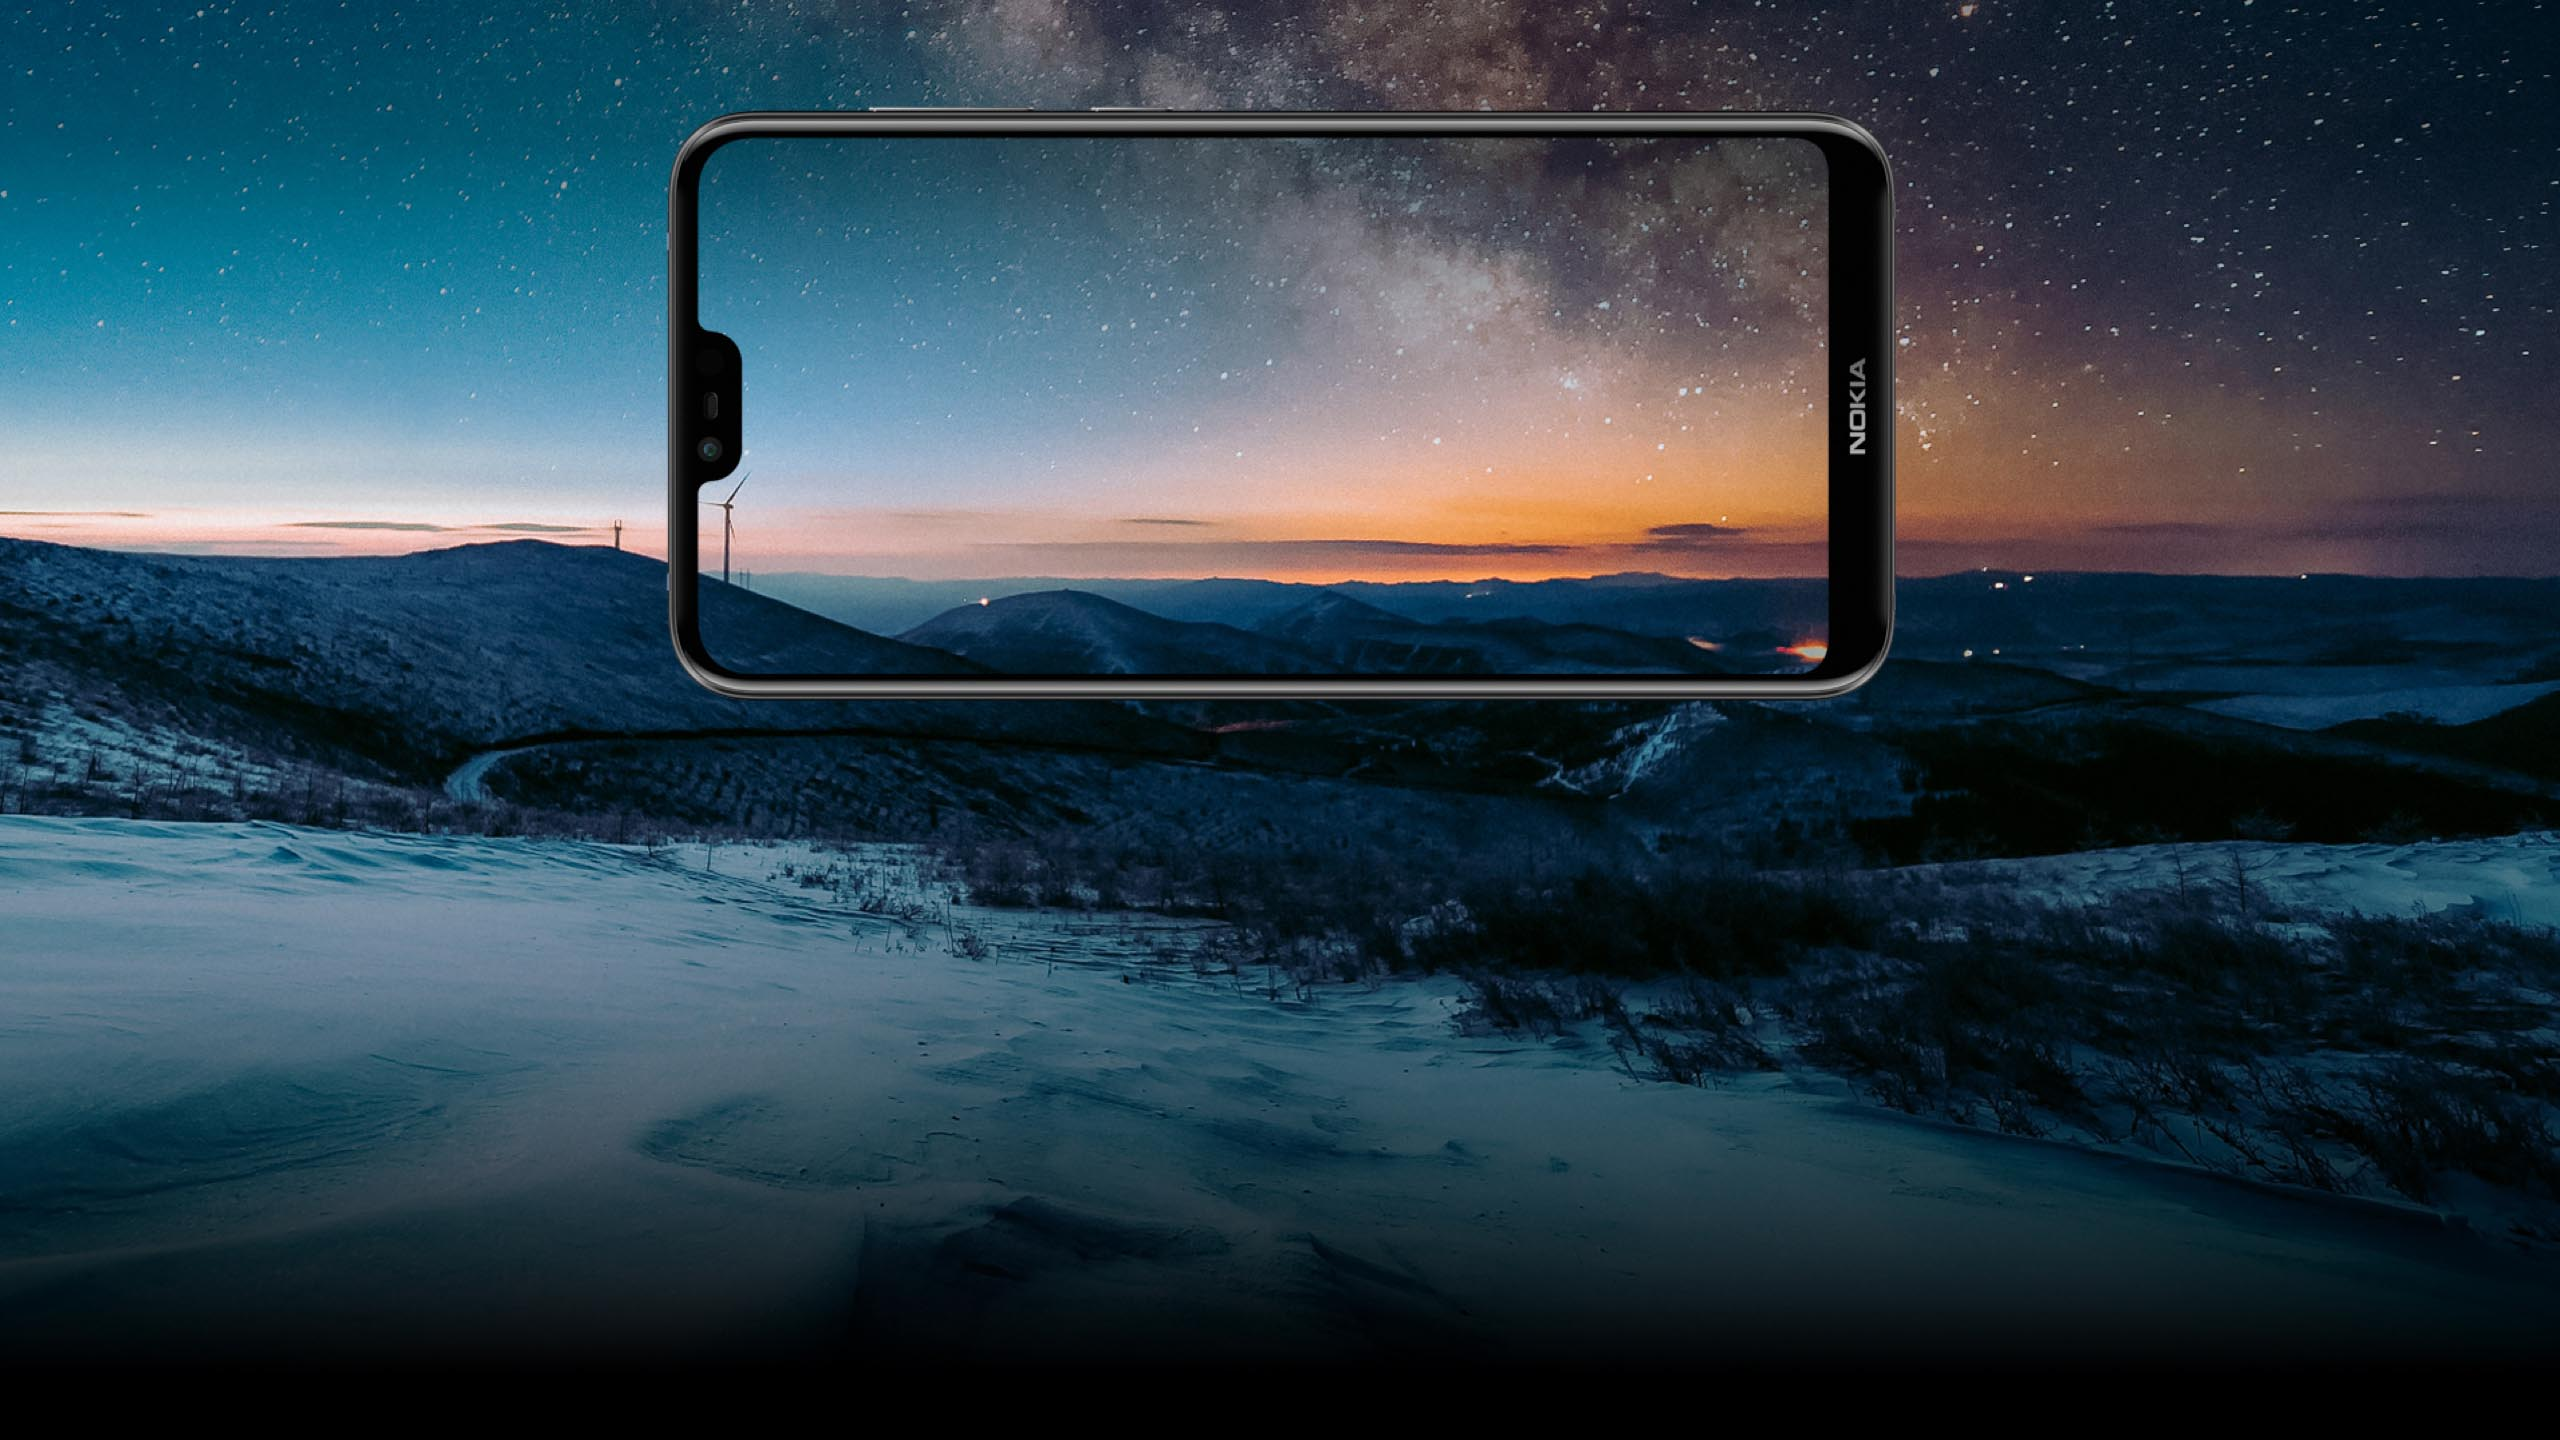 Nokia 6.1 Plus with Android One announced as the global version of Nokia X6 5